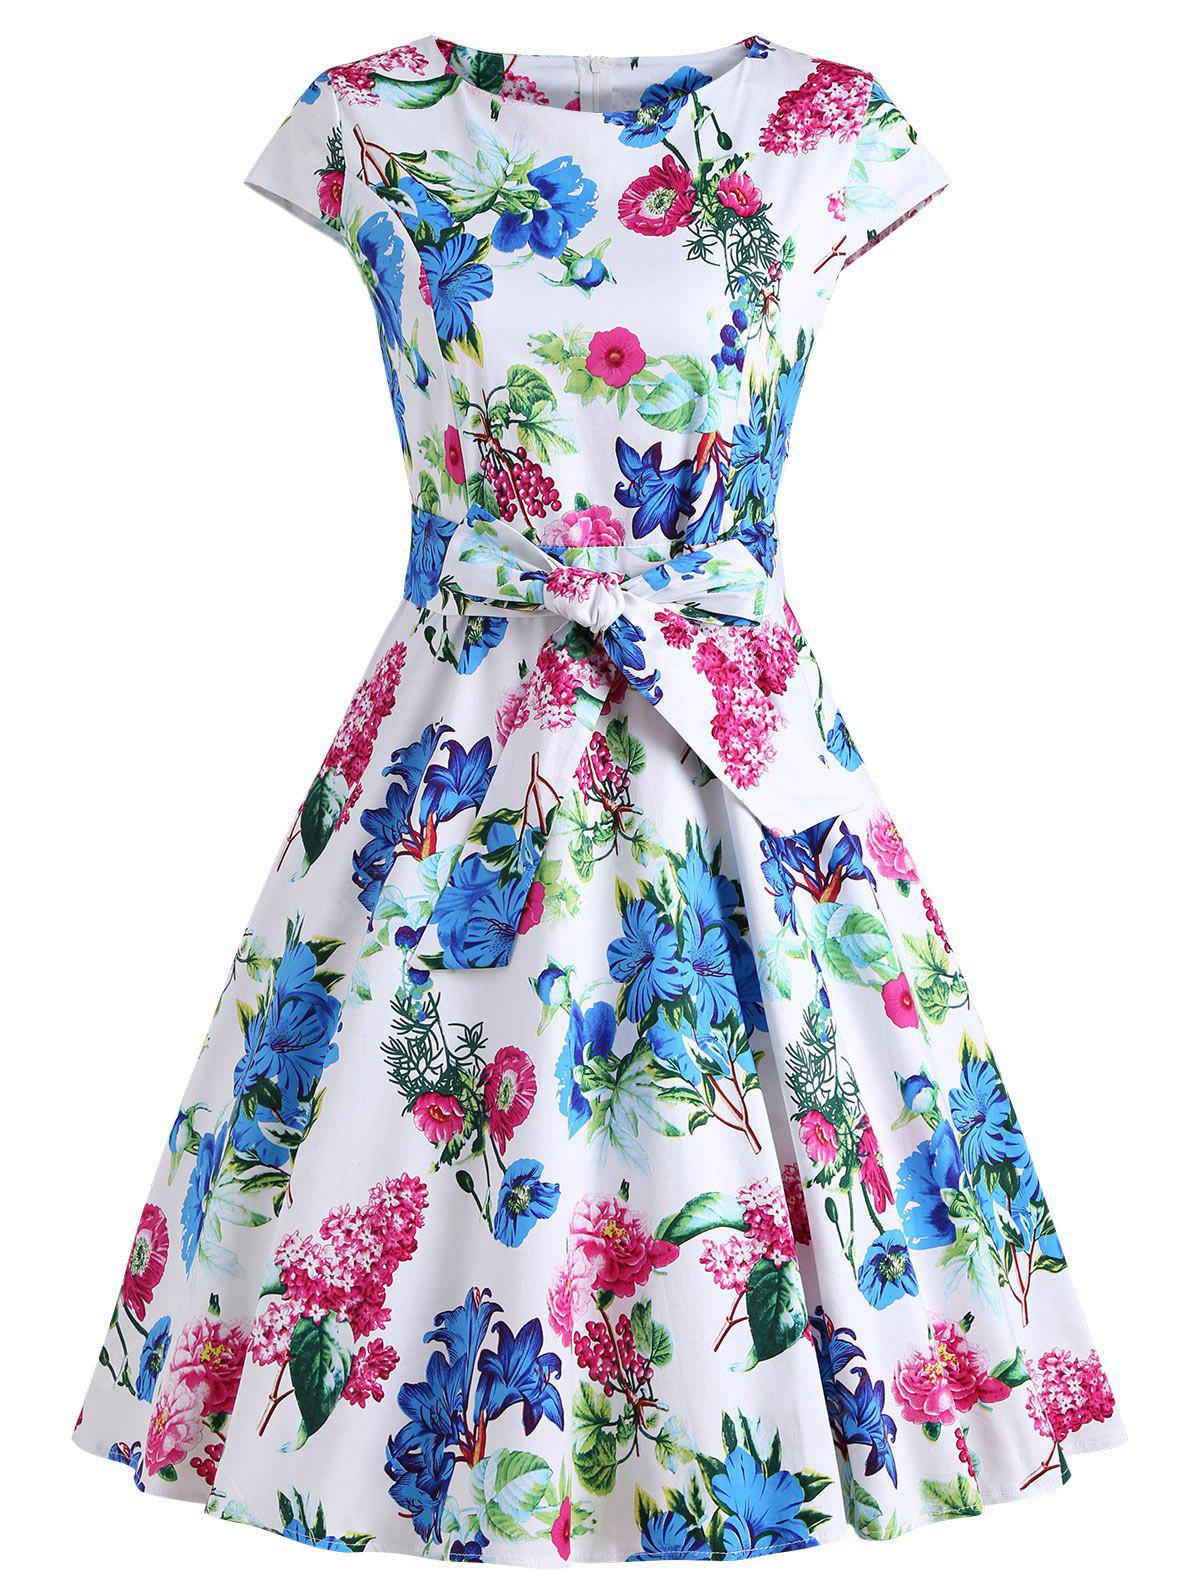 Vintage Floral Printed Fit and Flare Party Dress